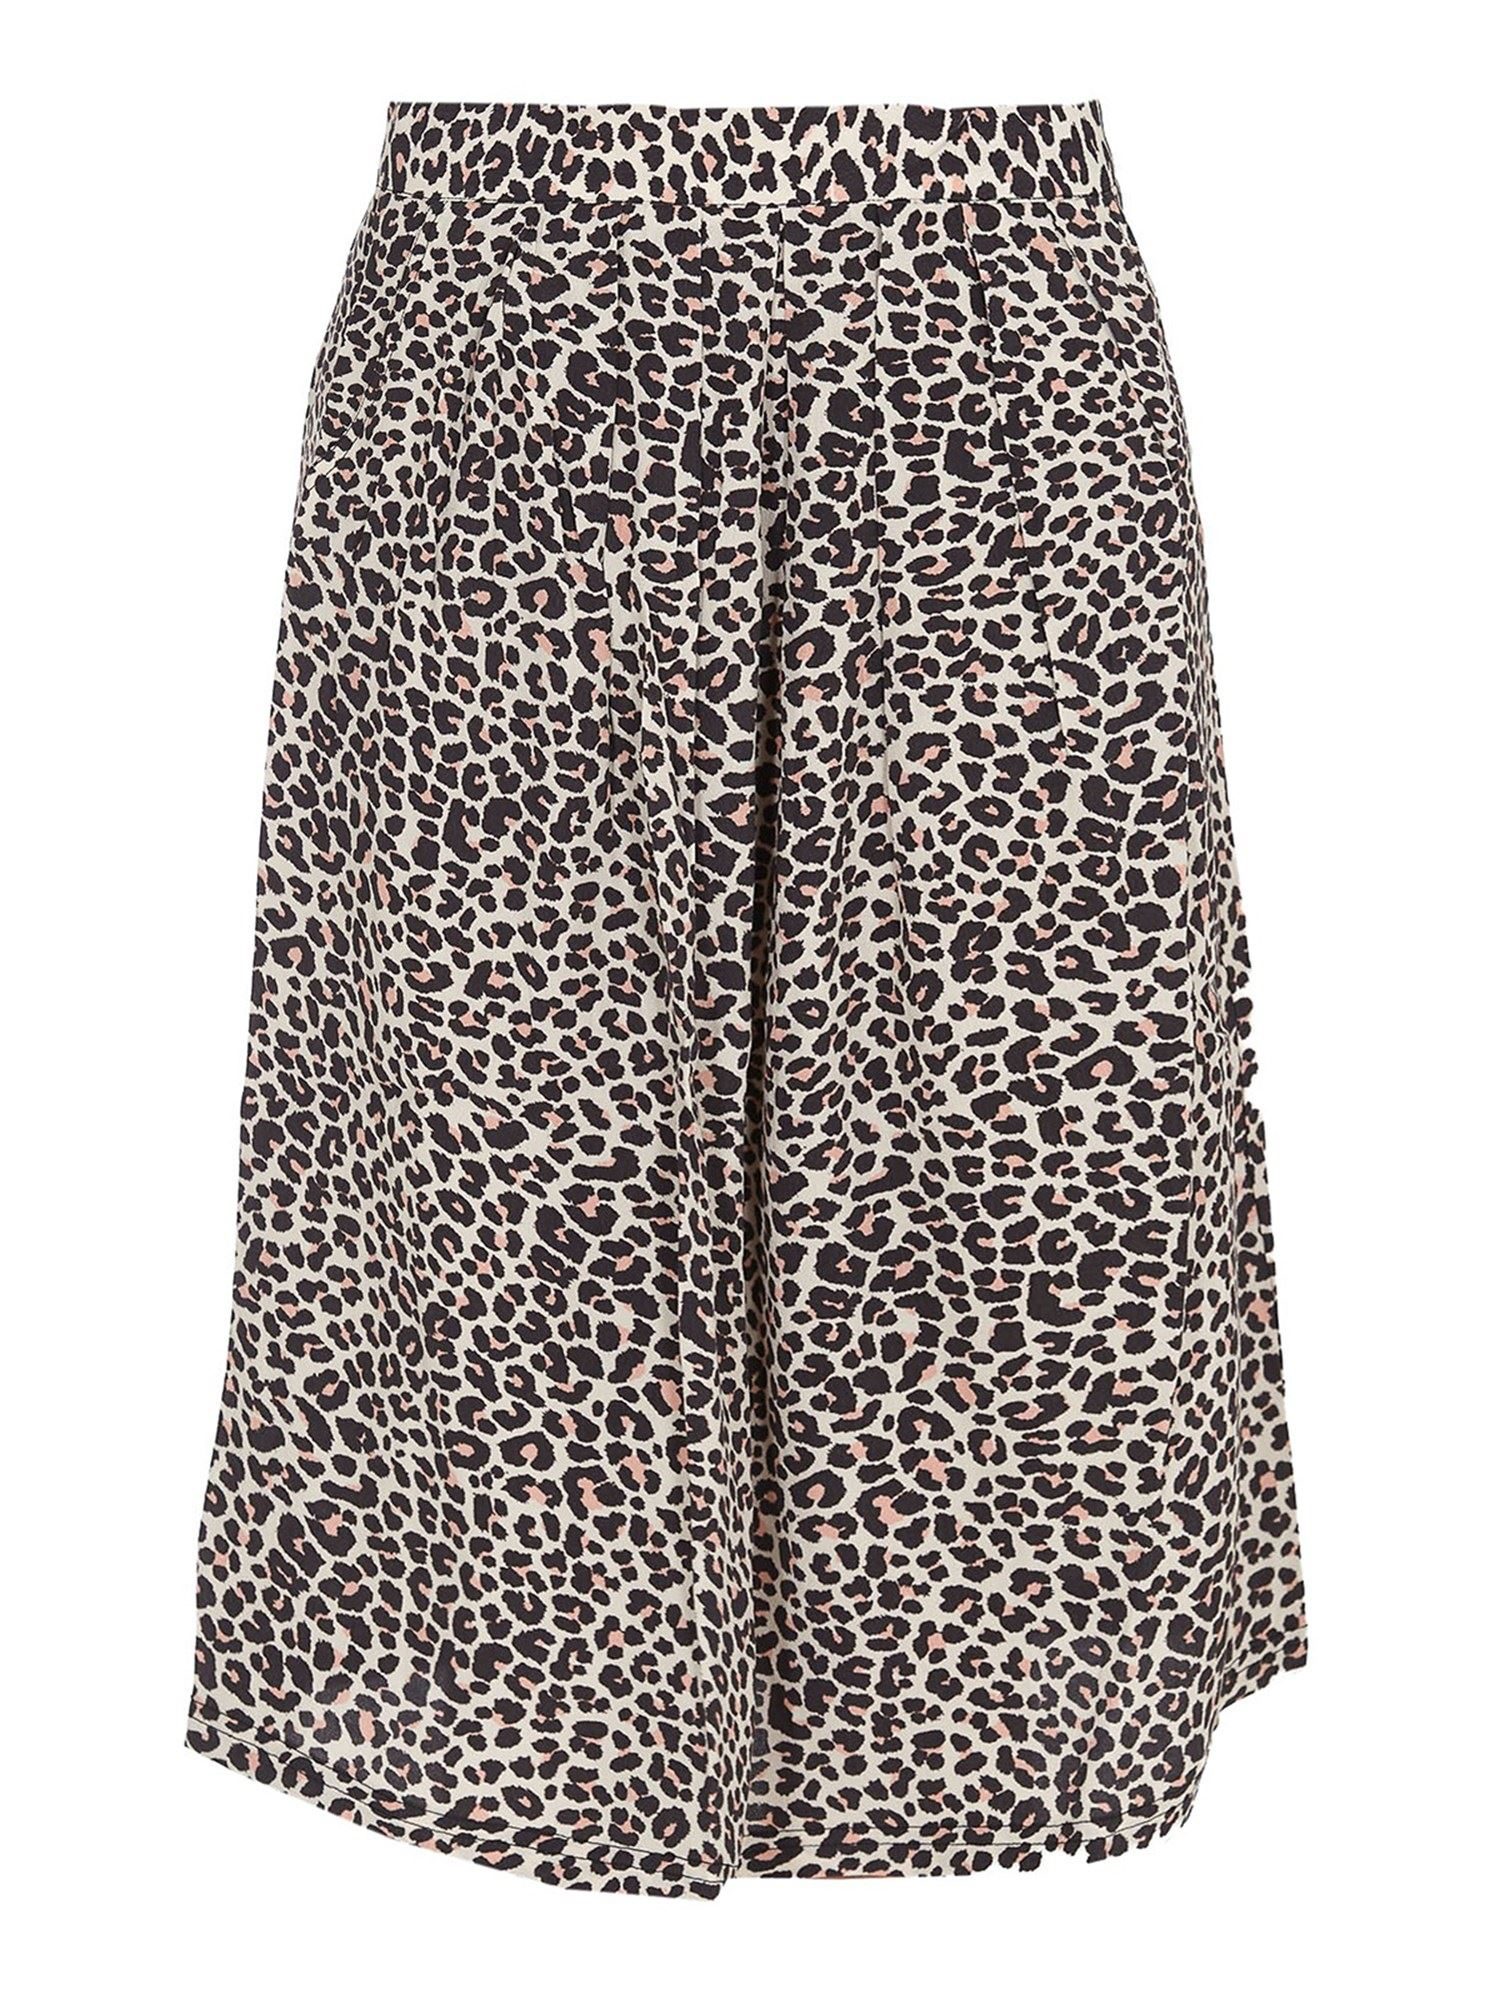 Zadig & Voltaire RECYCLED VISCOSE JUDE LEO GEO SKIRT